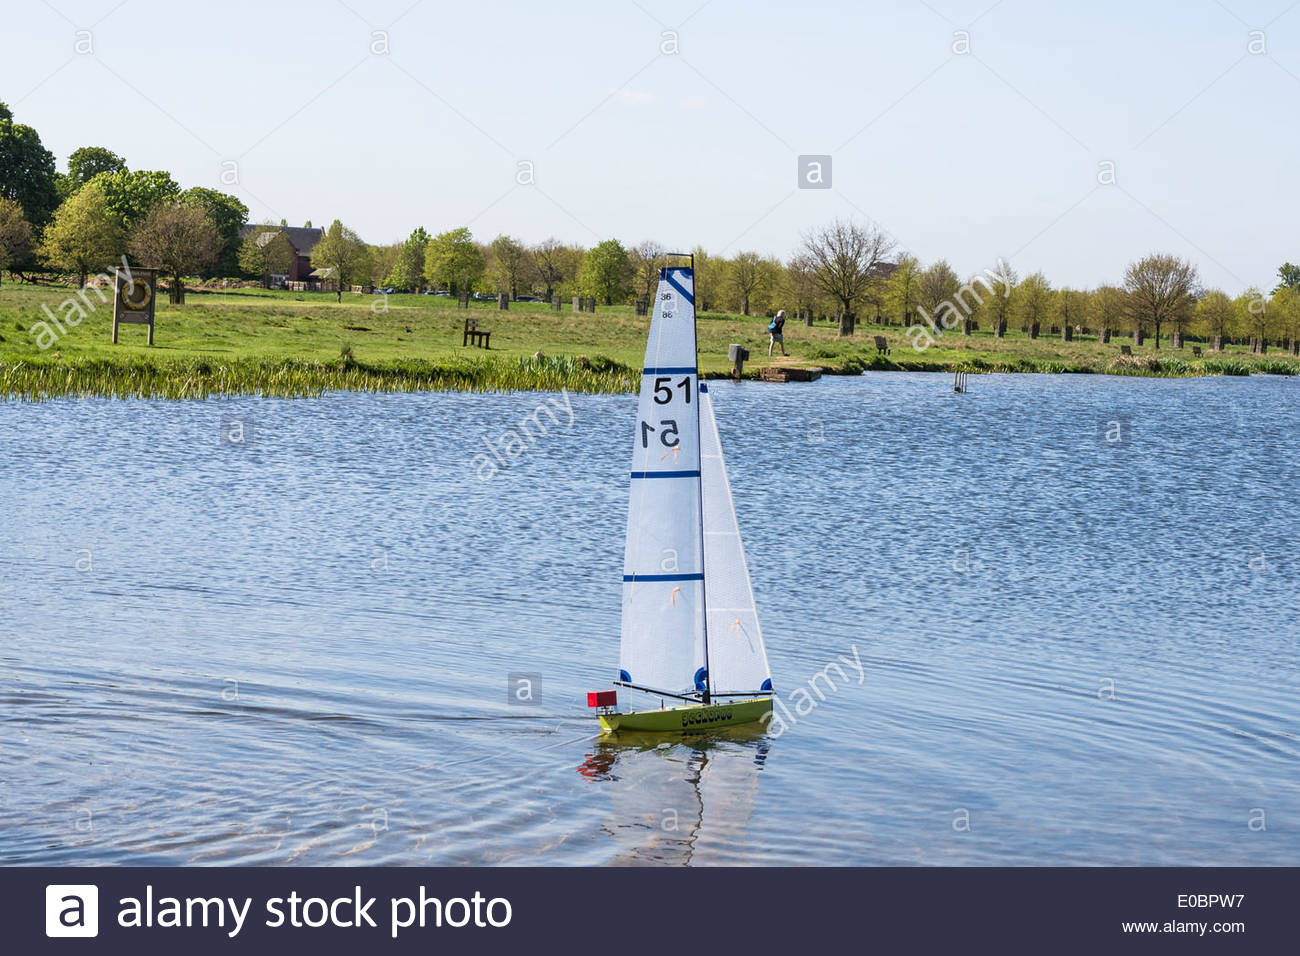 Model Yacht Sailing On Rick Pond Home Park Kingston Surrey England UK